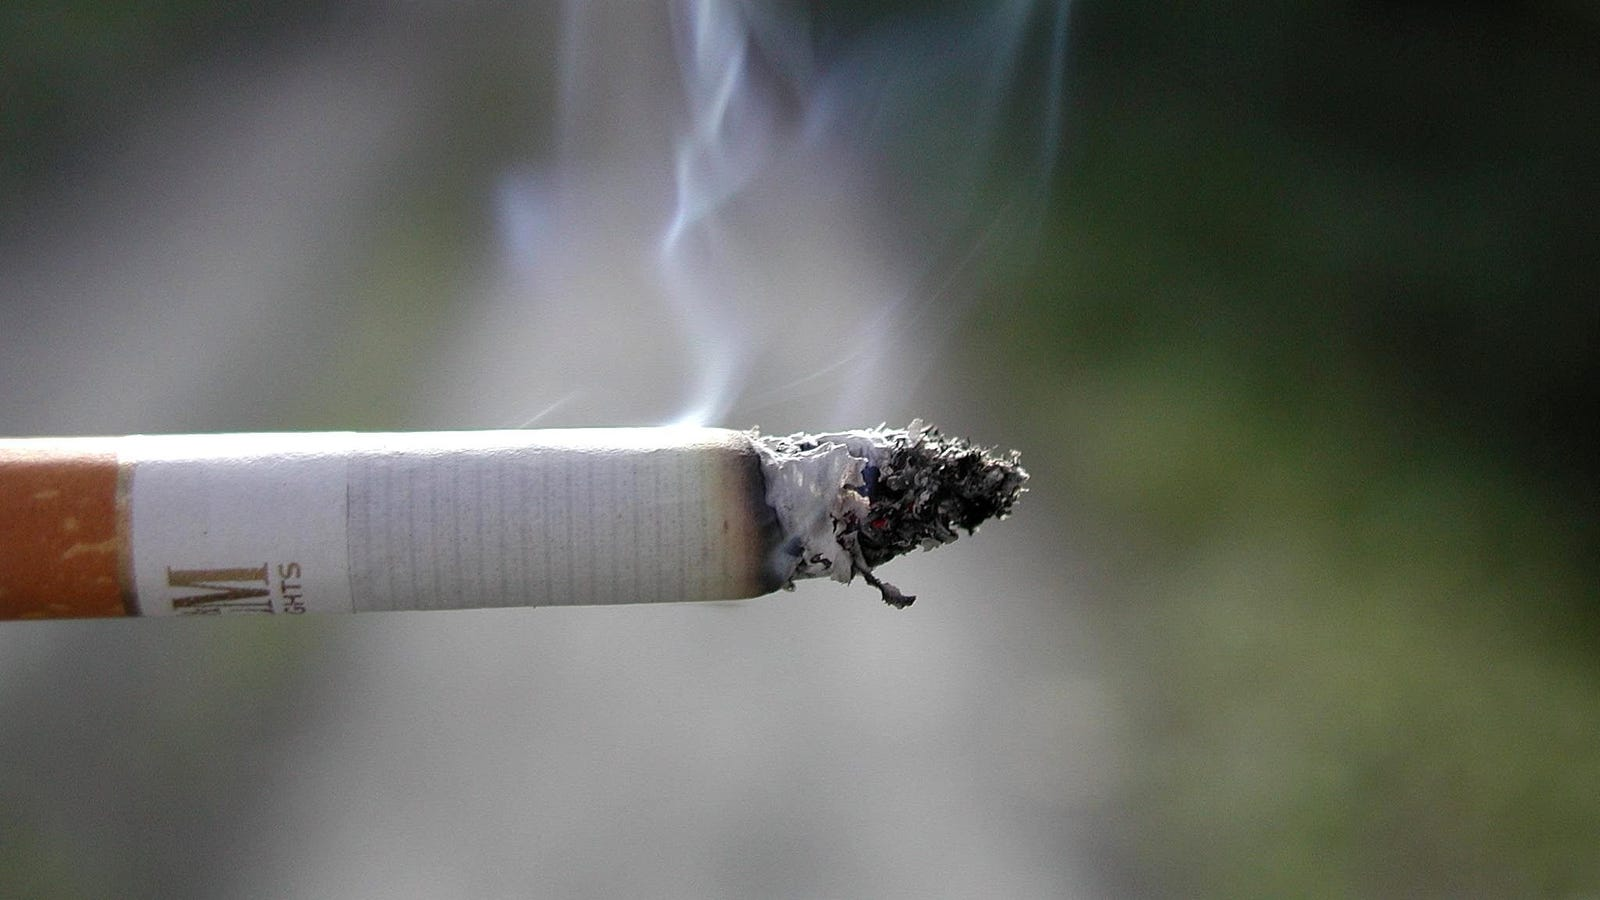 How much Parliament cigarettes cost in France